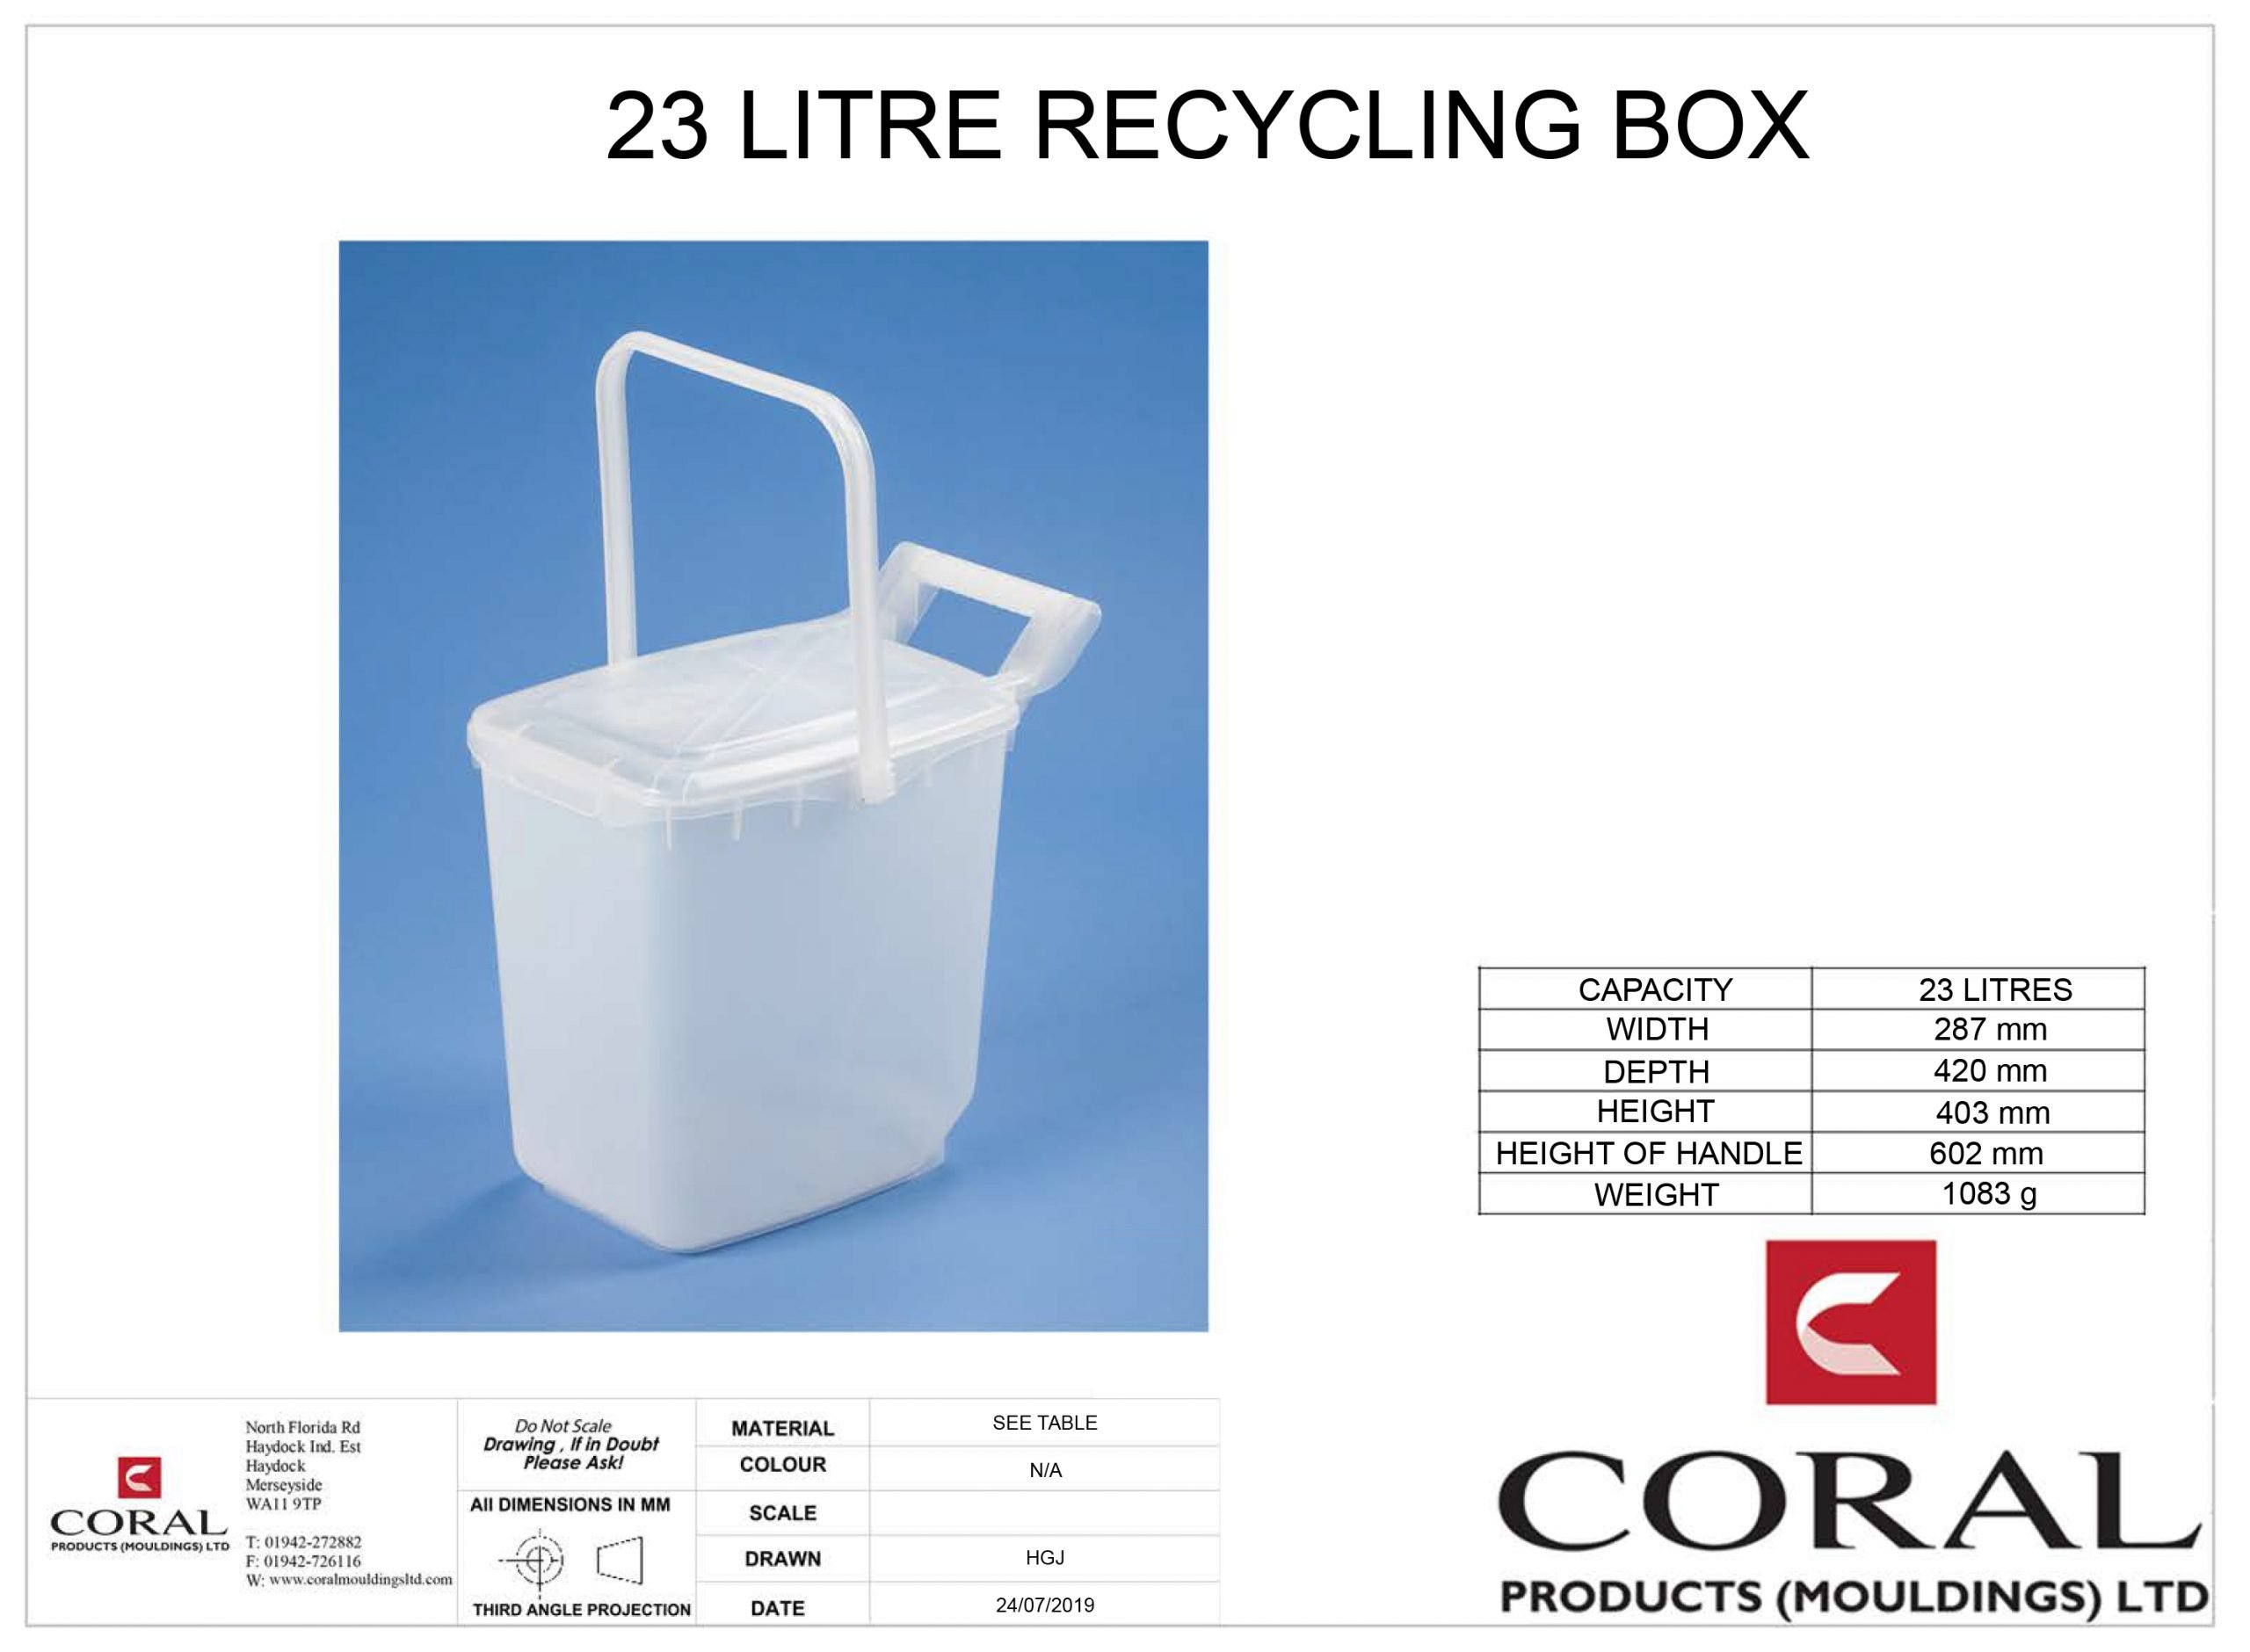 23 litre recycling box scaled